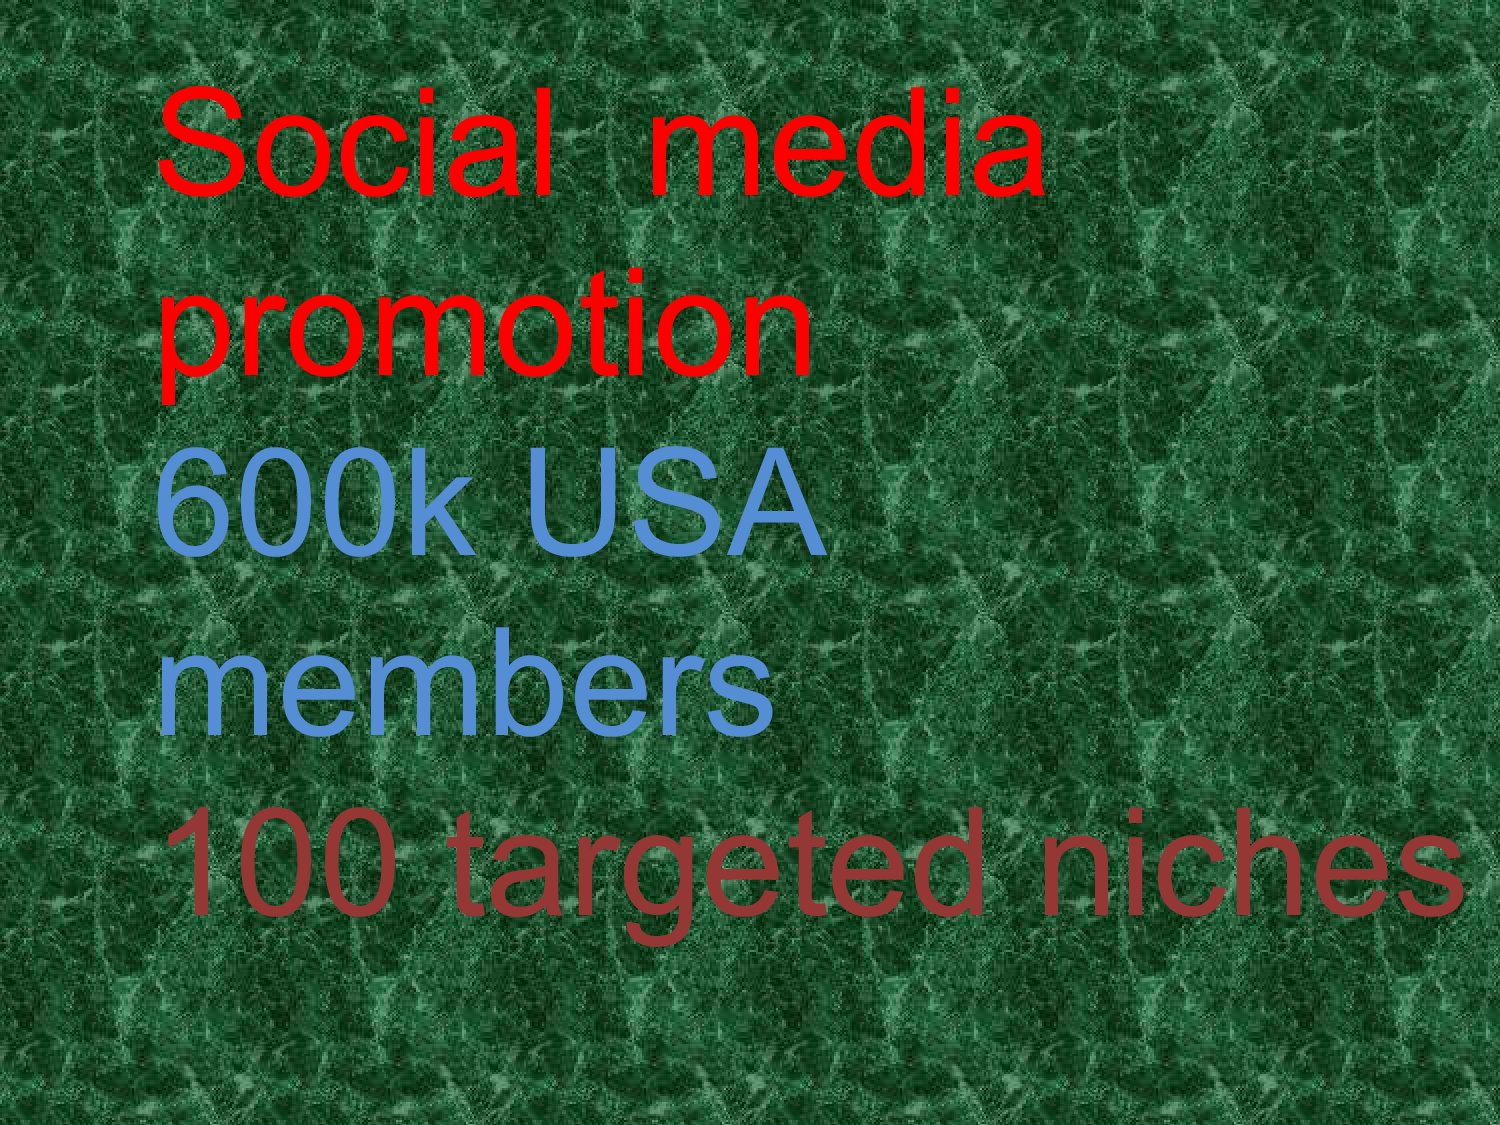 I will marketing your website to social members